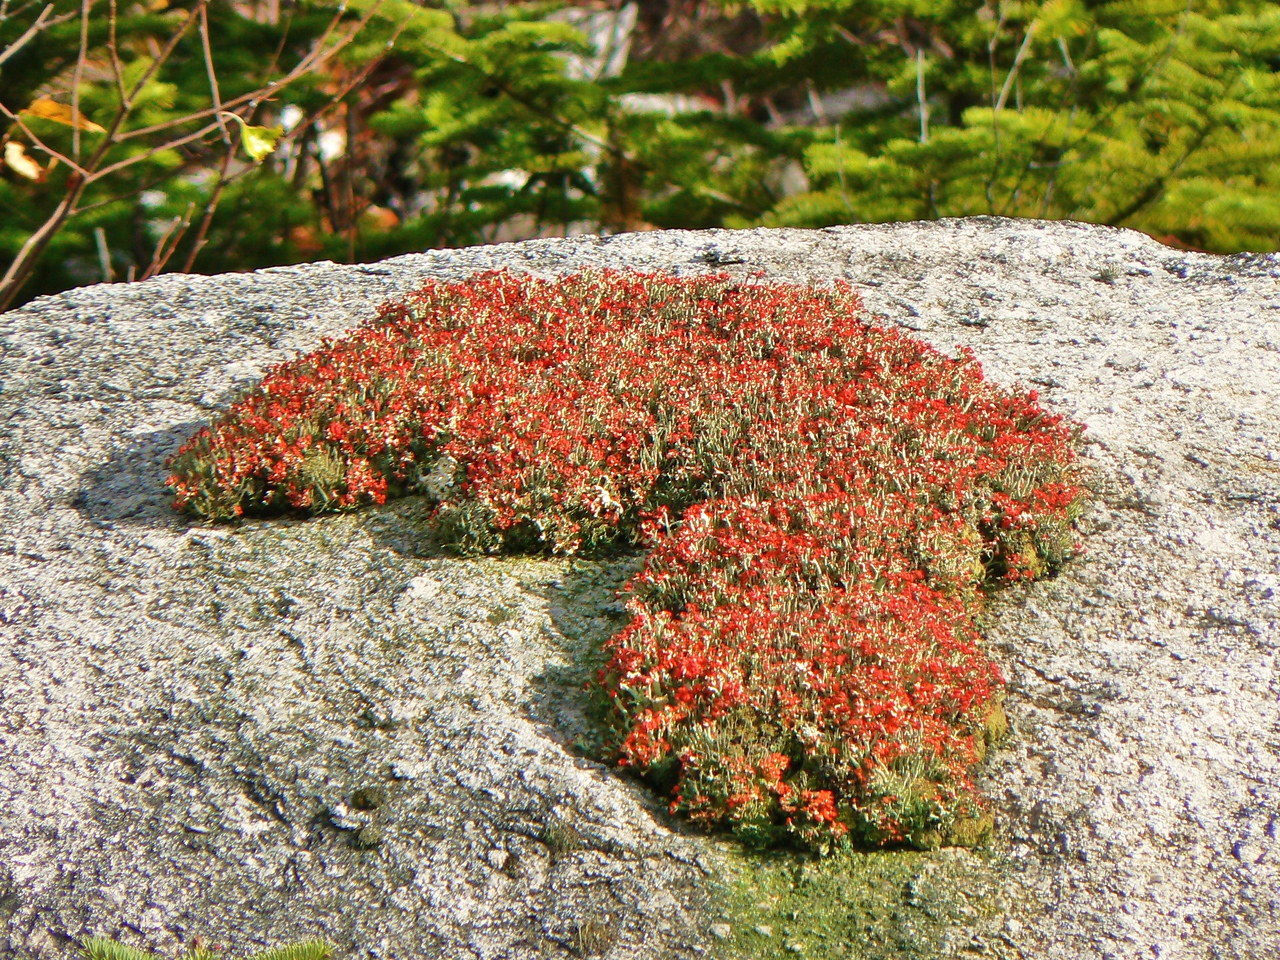 Some very pretty lichen on a boulder next to the road